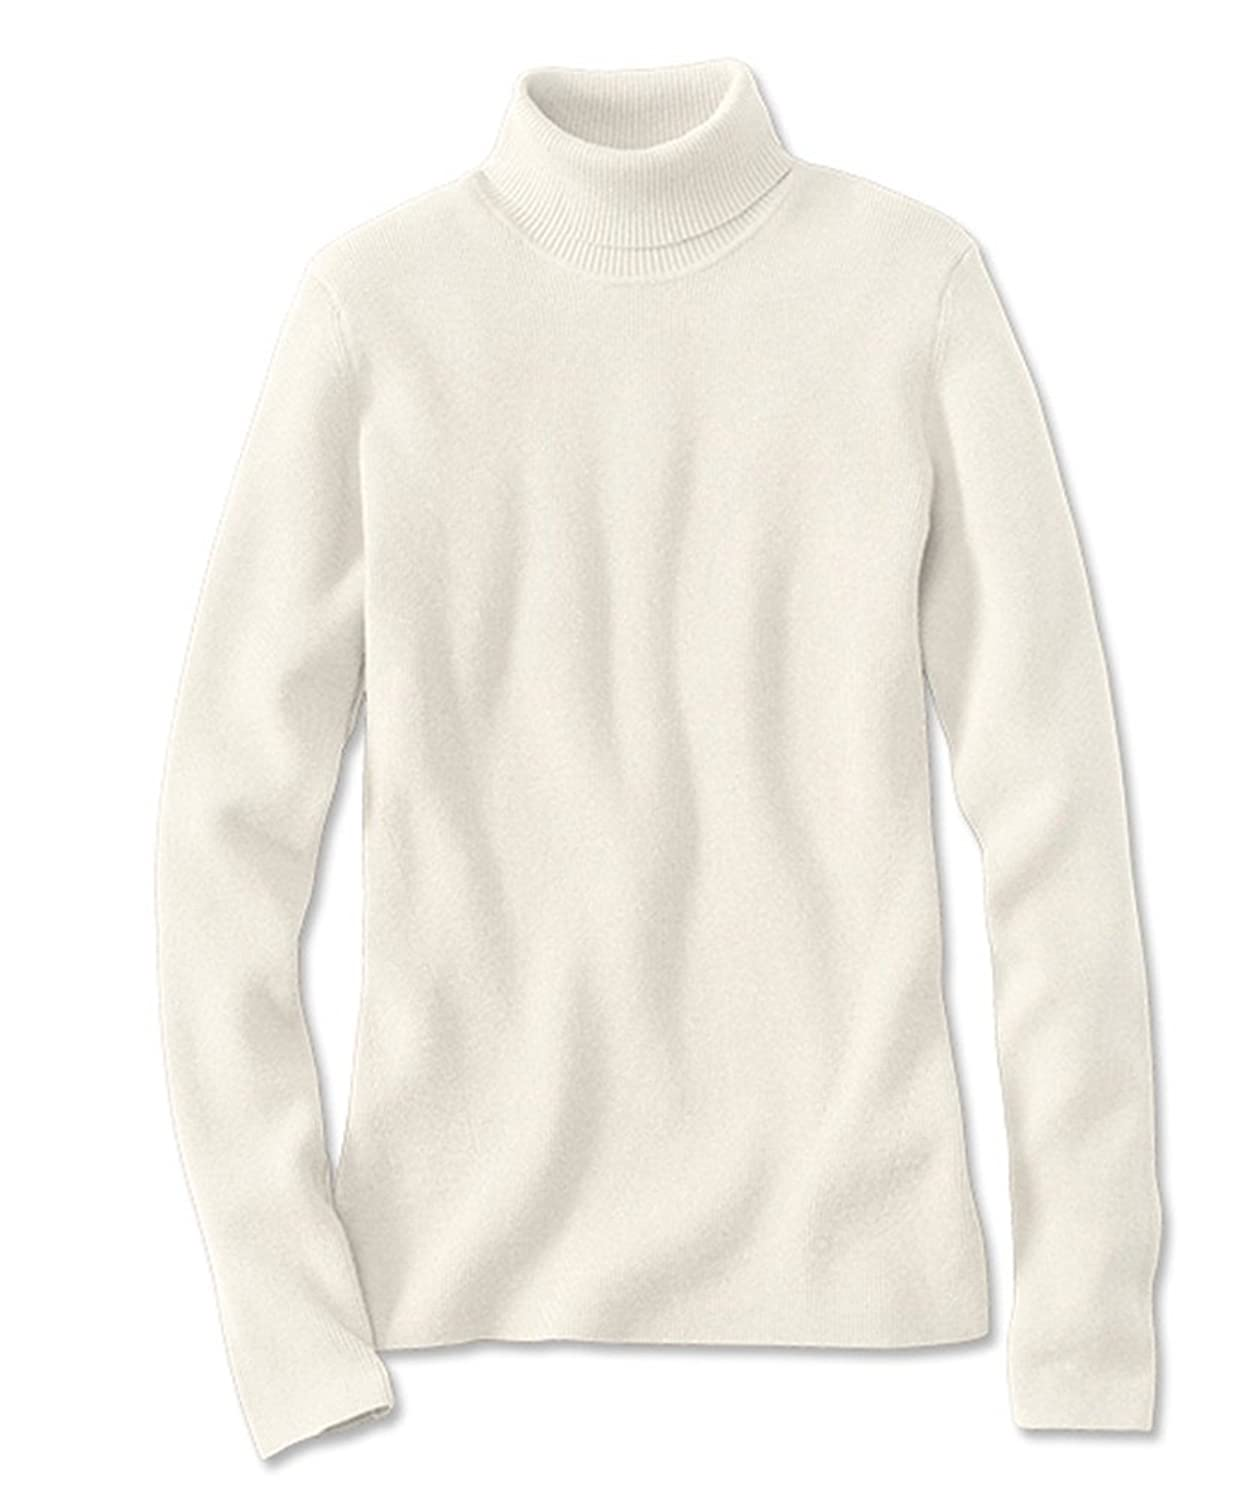 Orvis Women's Ribbed Cotton-blend Turtleneck, Snow